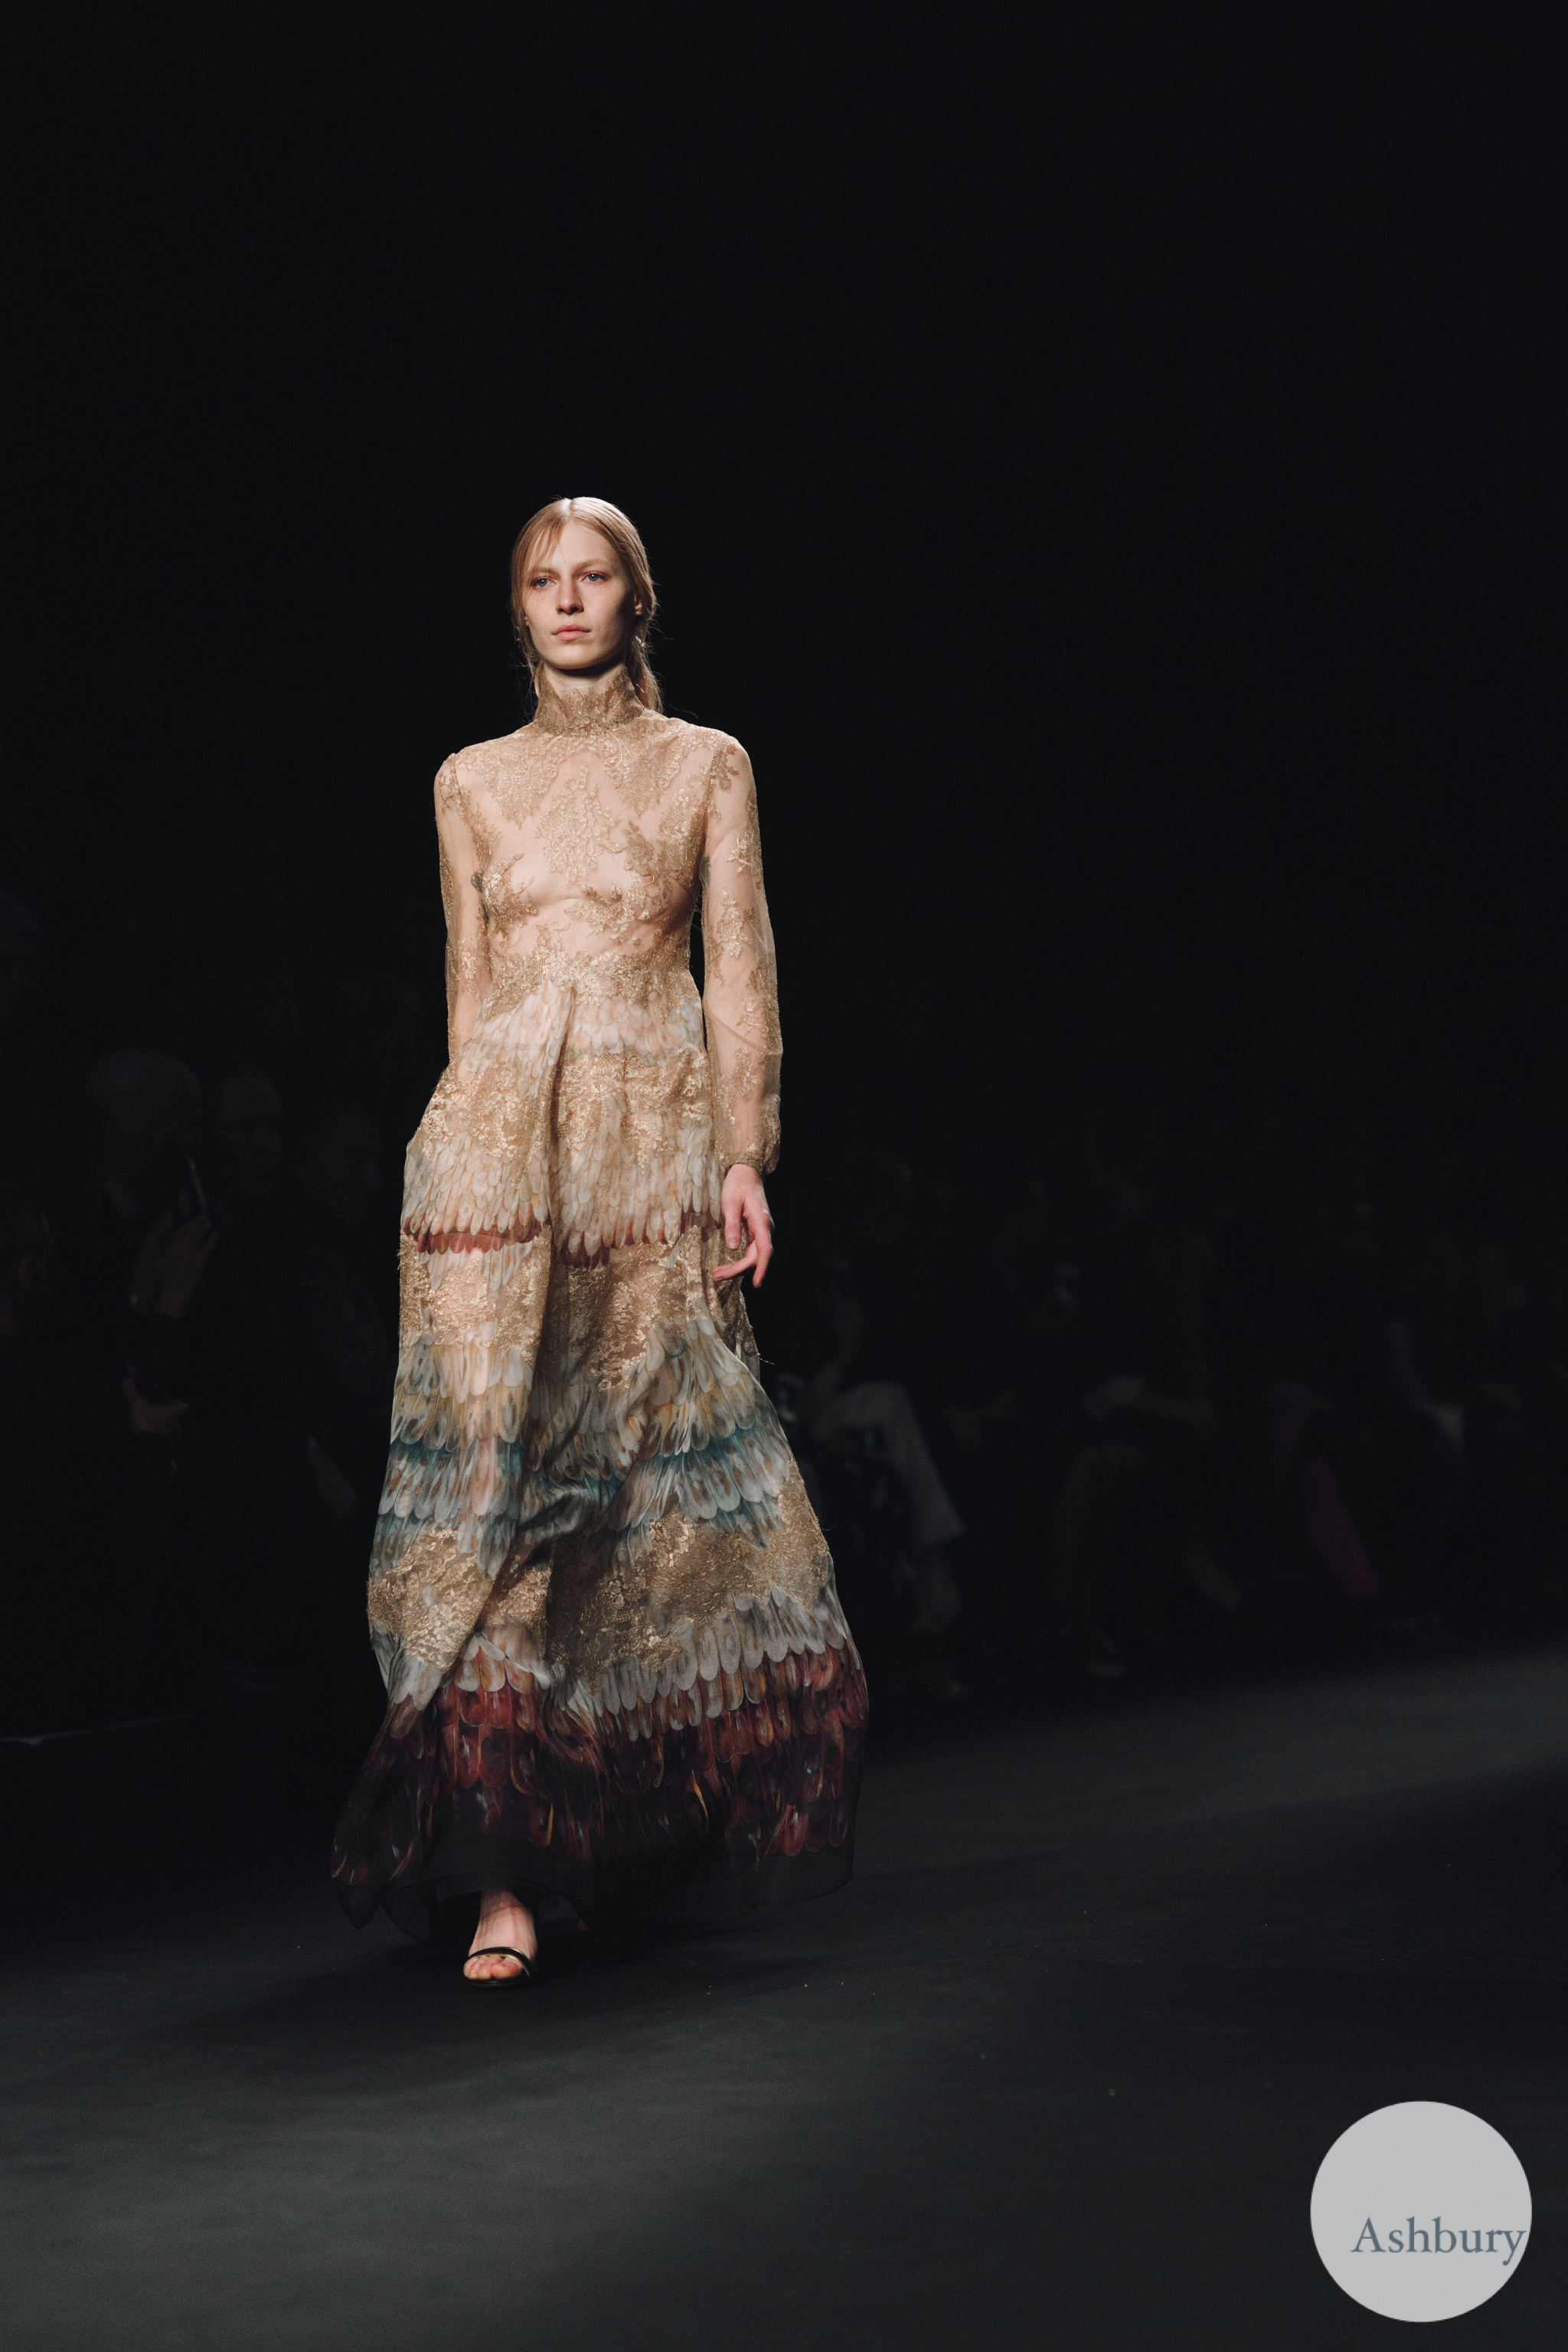 valentino fall winter 2015 - julia nobis 2